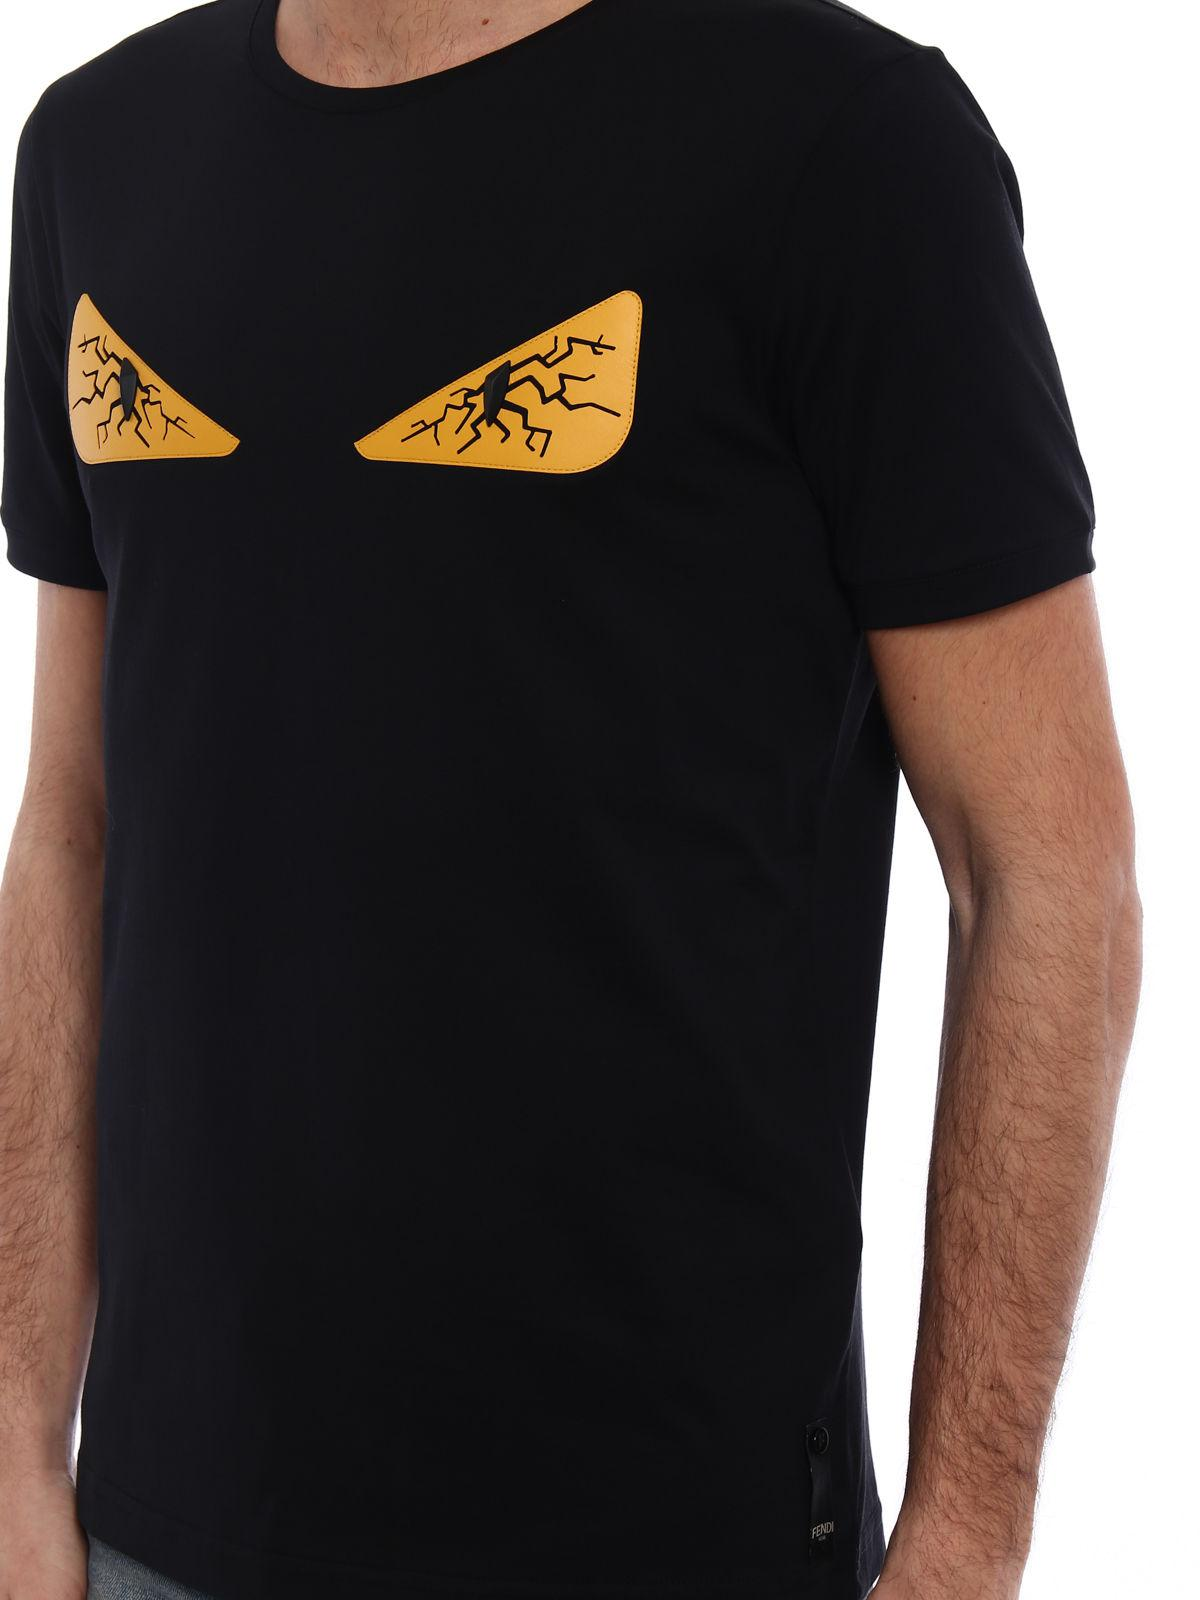 a239216738d7a6 Fendi Bugs Tired Eyes T-shirt in Black for Men - Lyst